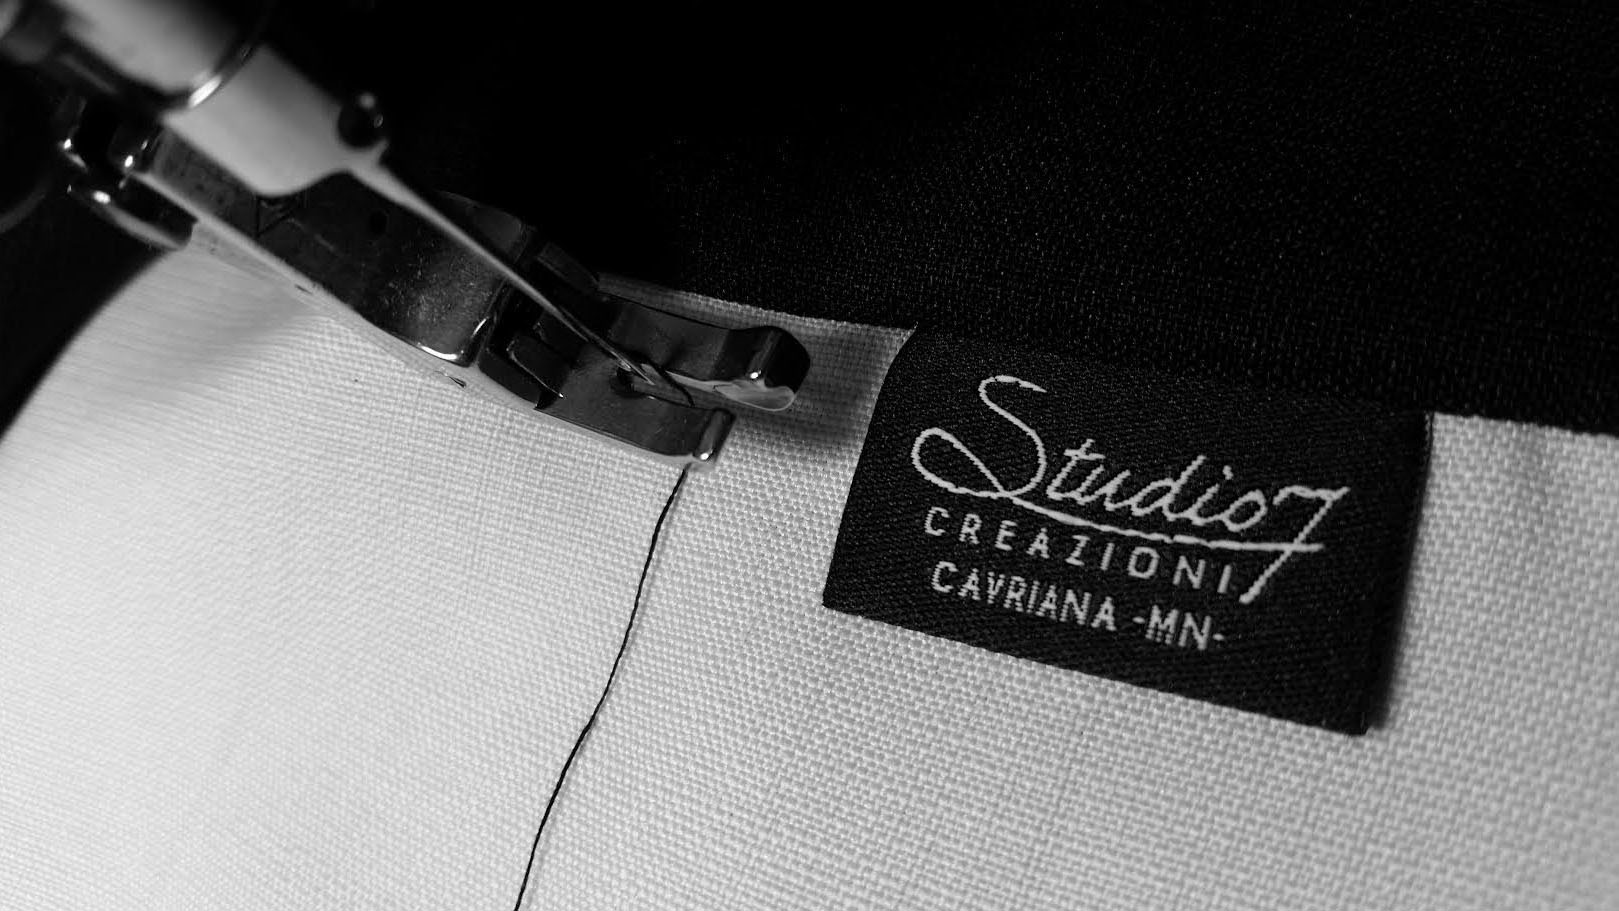 Studio7Creazioni - Fashion in Professional